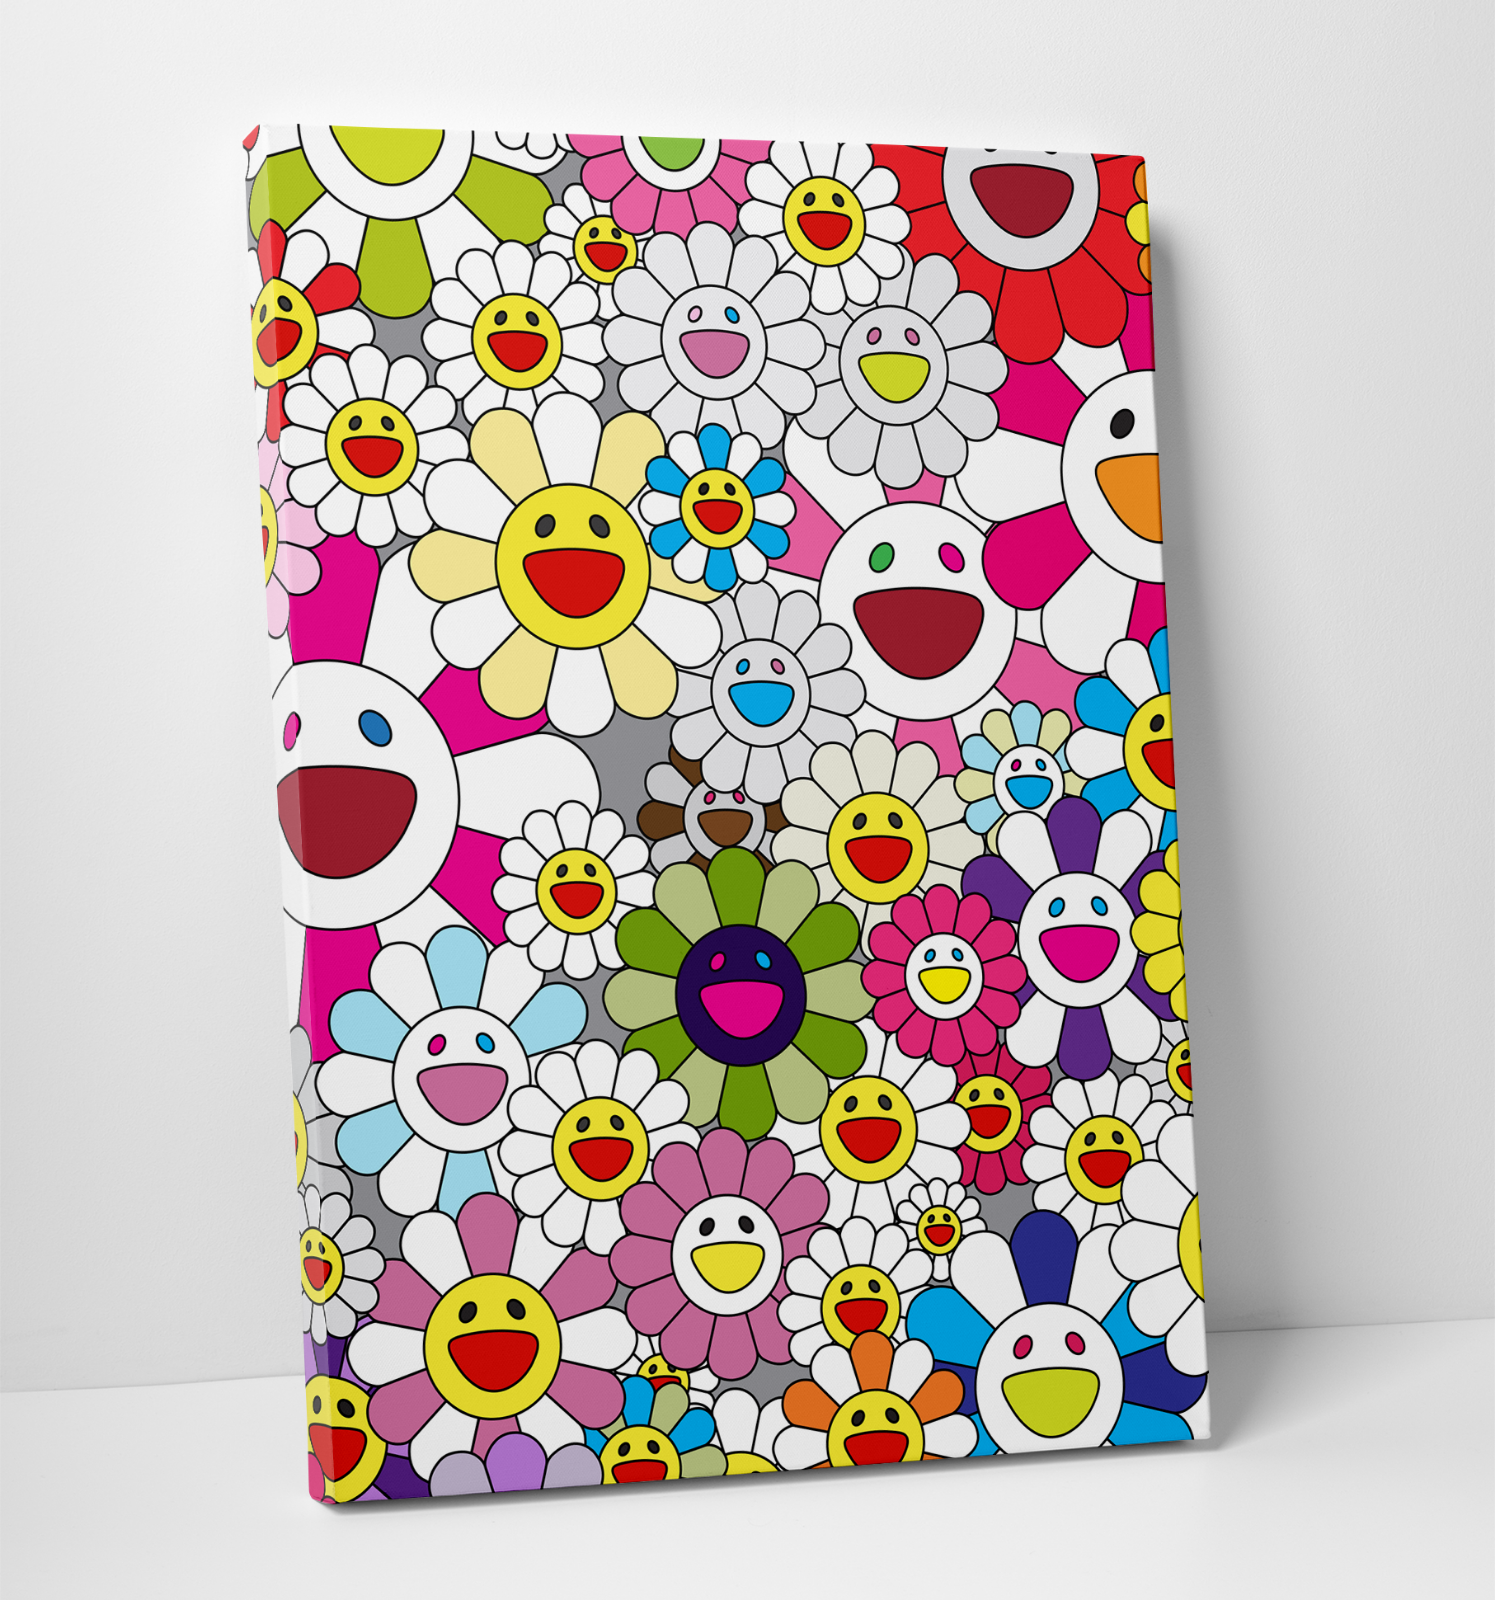 "Takashi Murakami Flowers with Smiley Faces Gallery Art Canvas 11x14"" Complexcon"